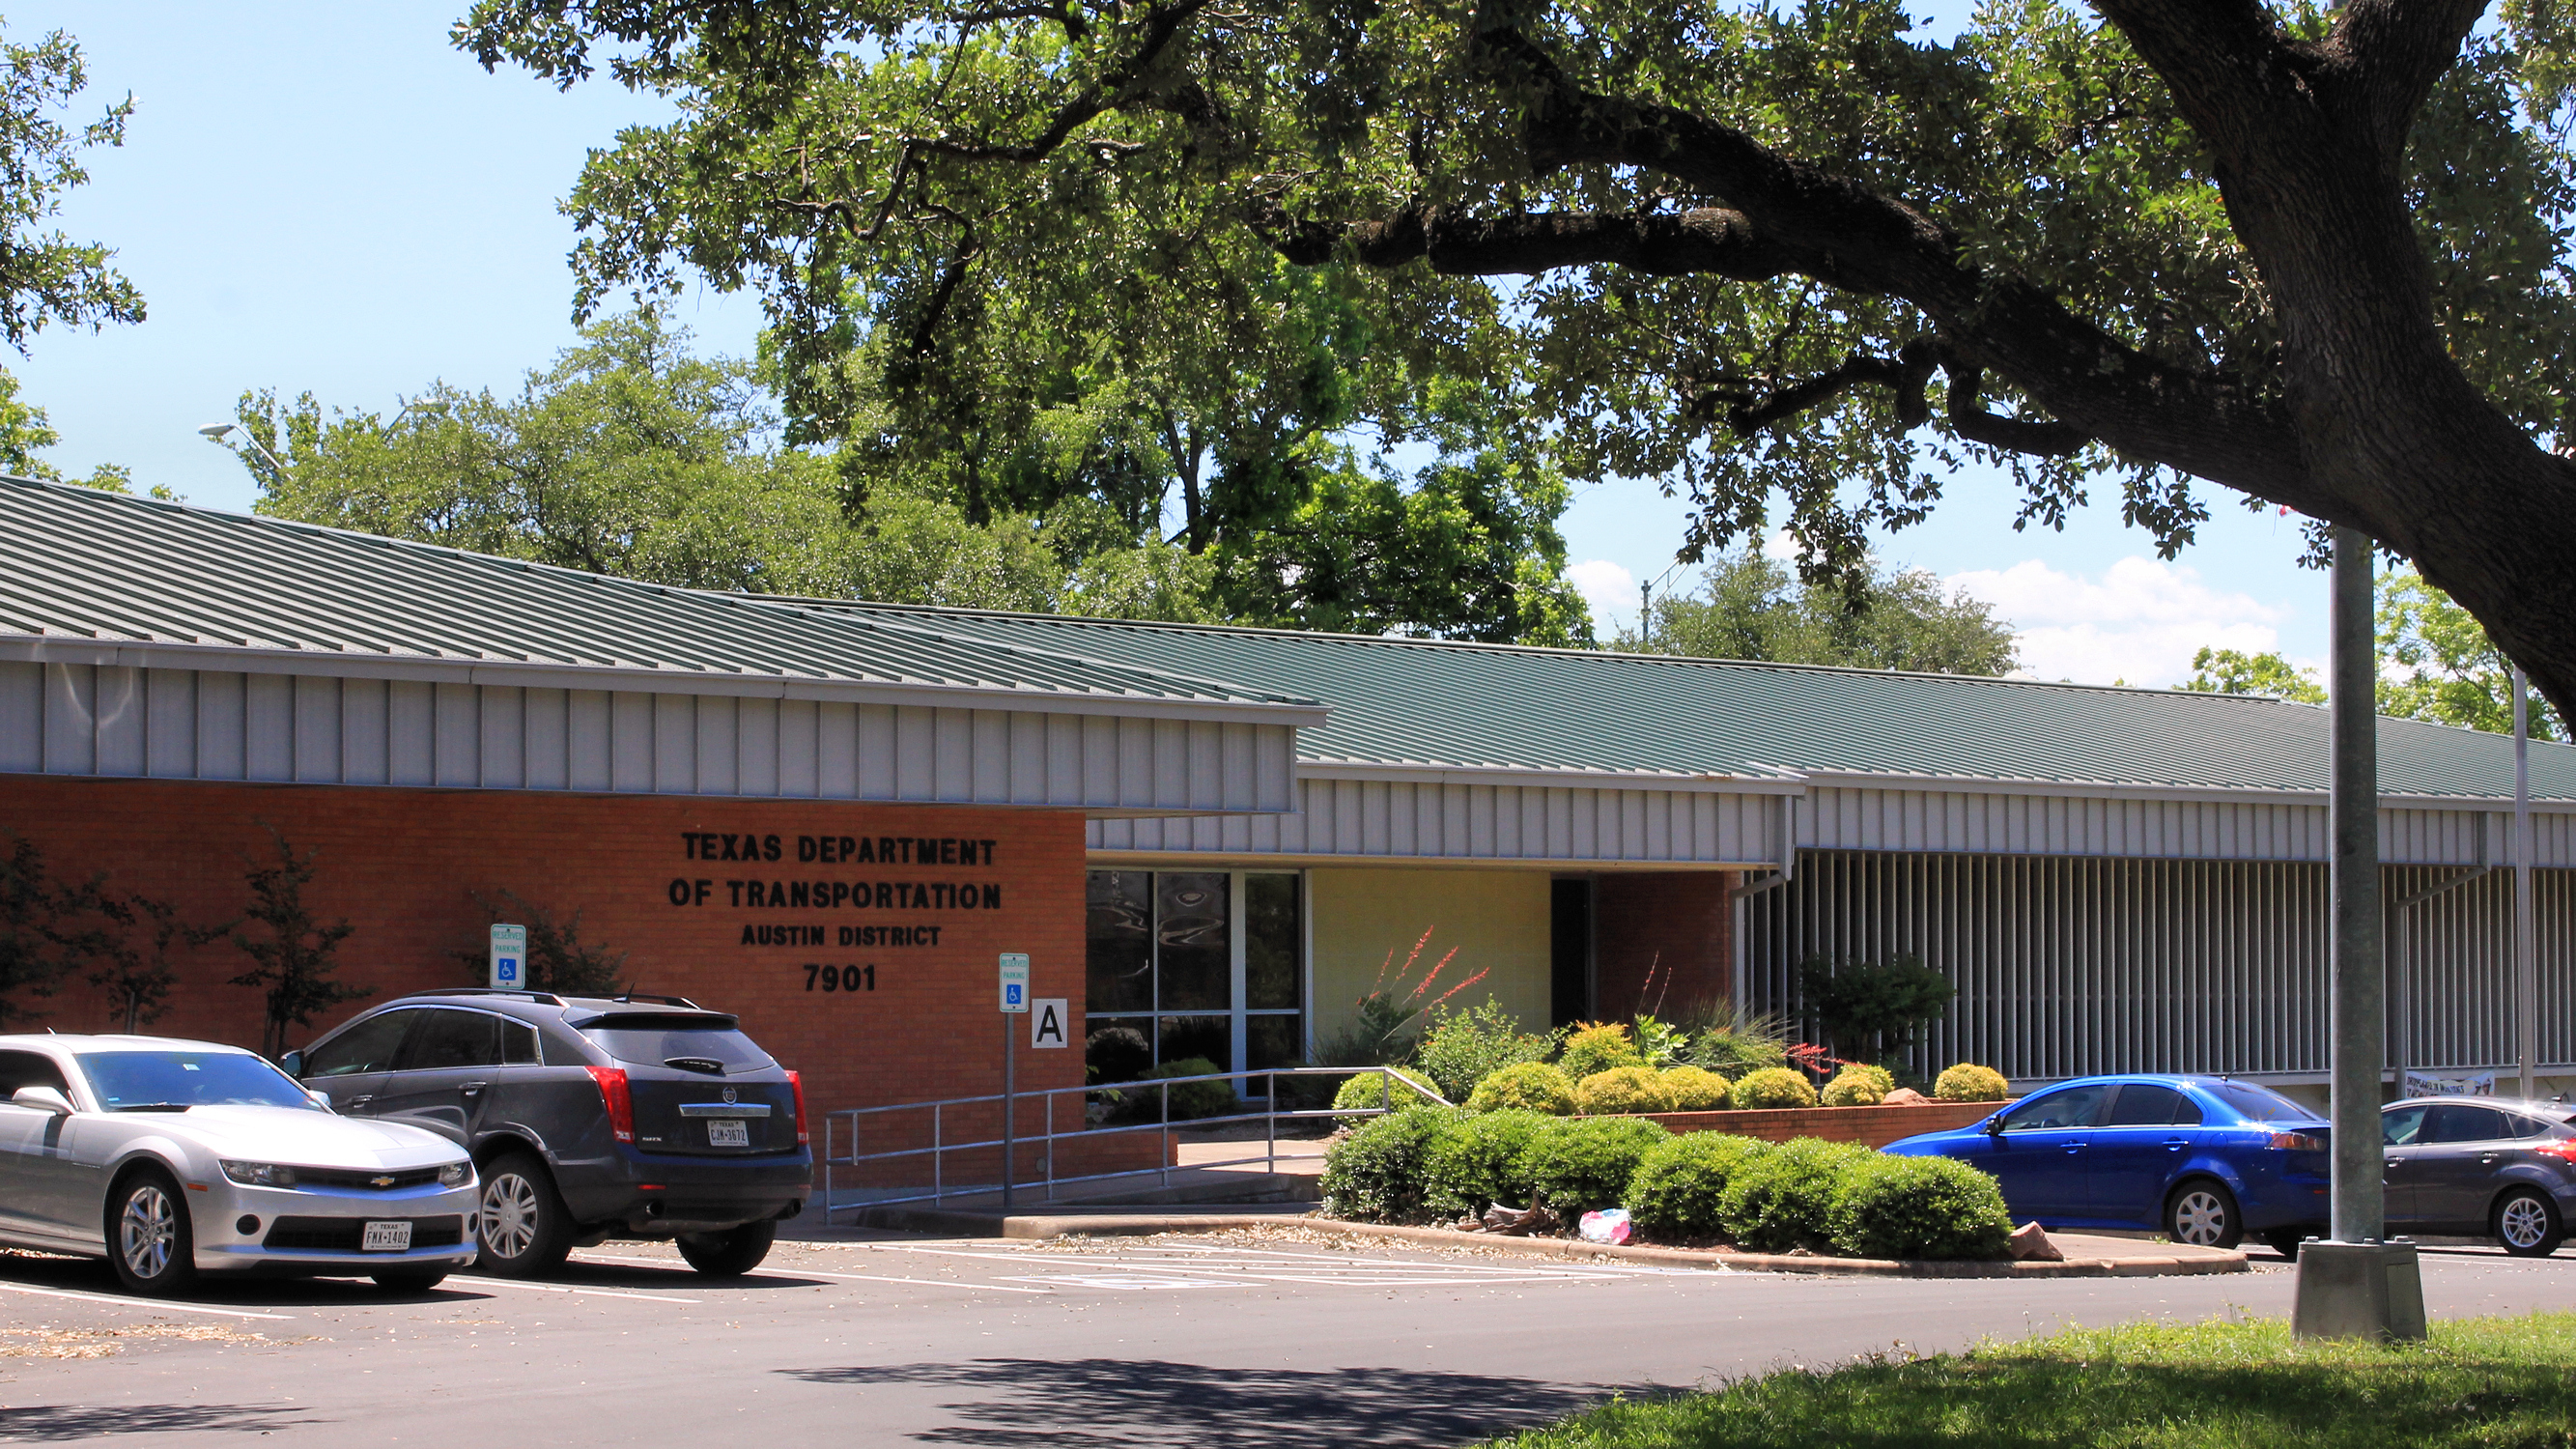 Texas A&M Forest Service, Texas Department of Transportation, Texas A&M  Engineering Extension Service and